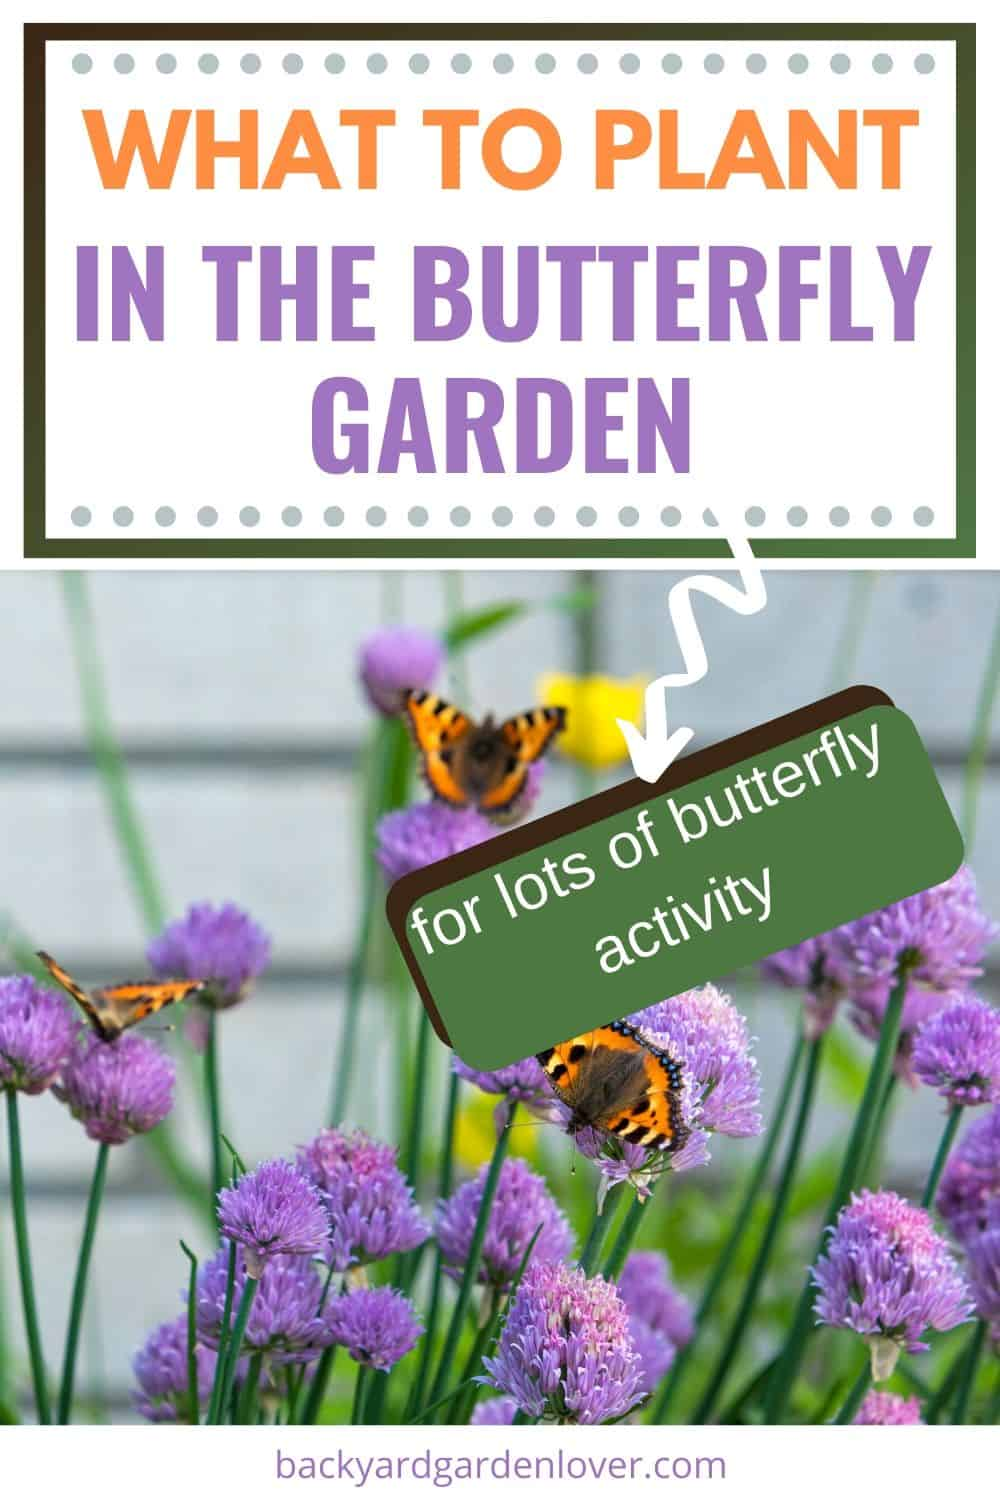 What to plant in the butterfly garden